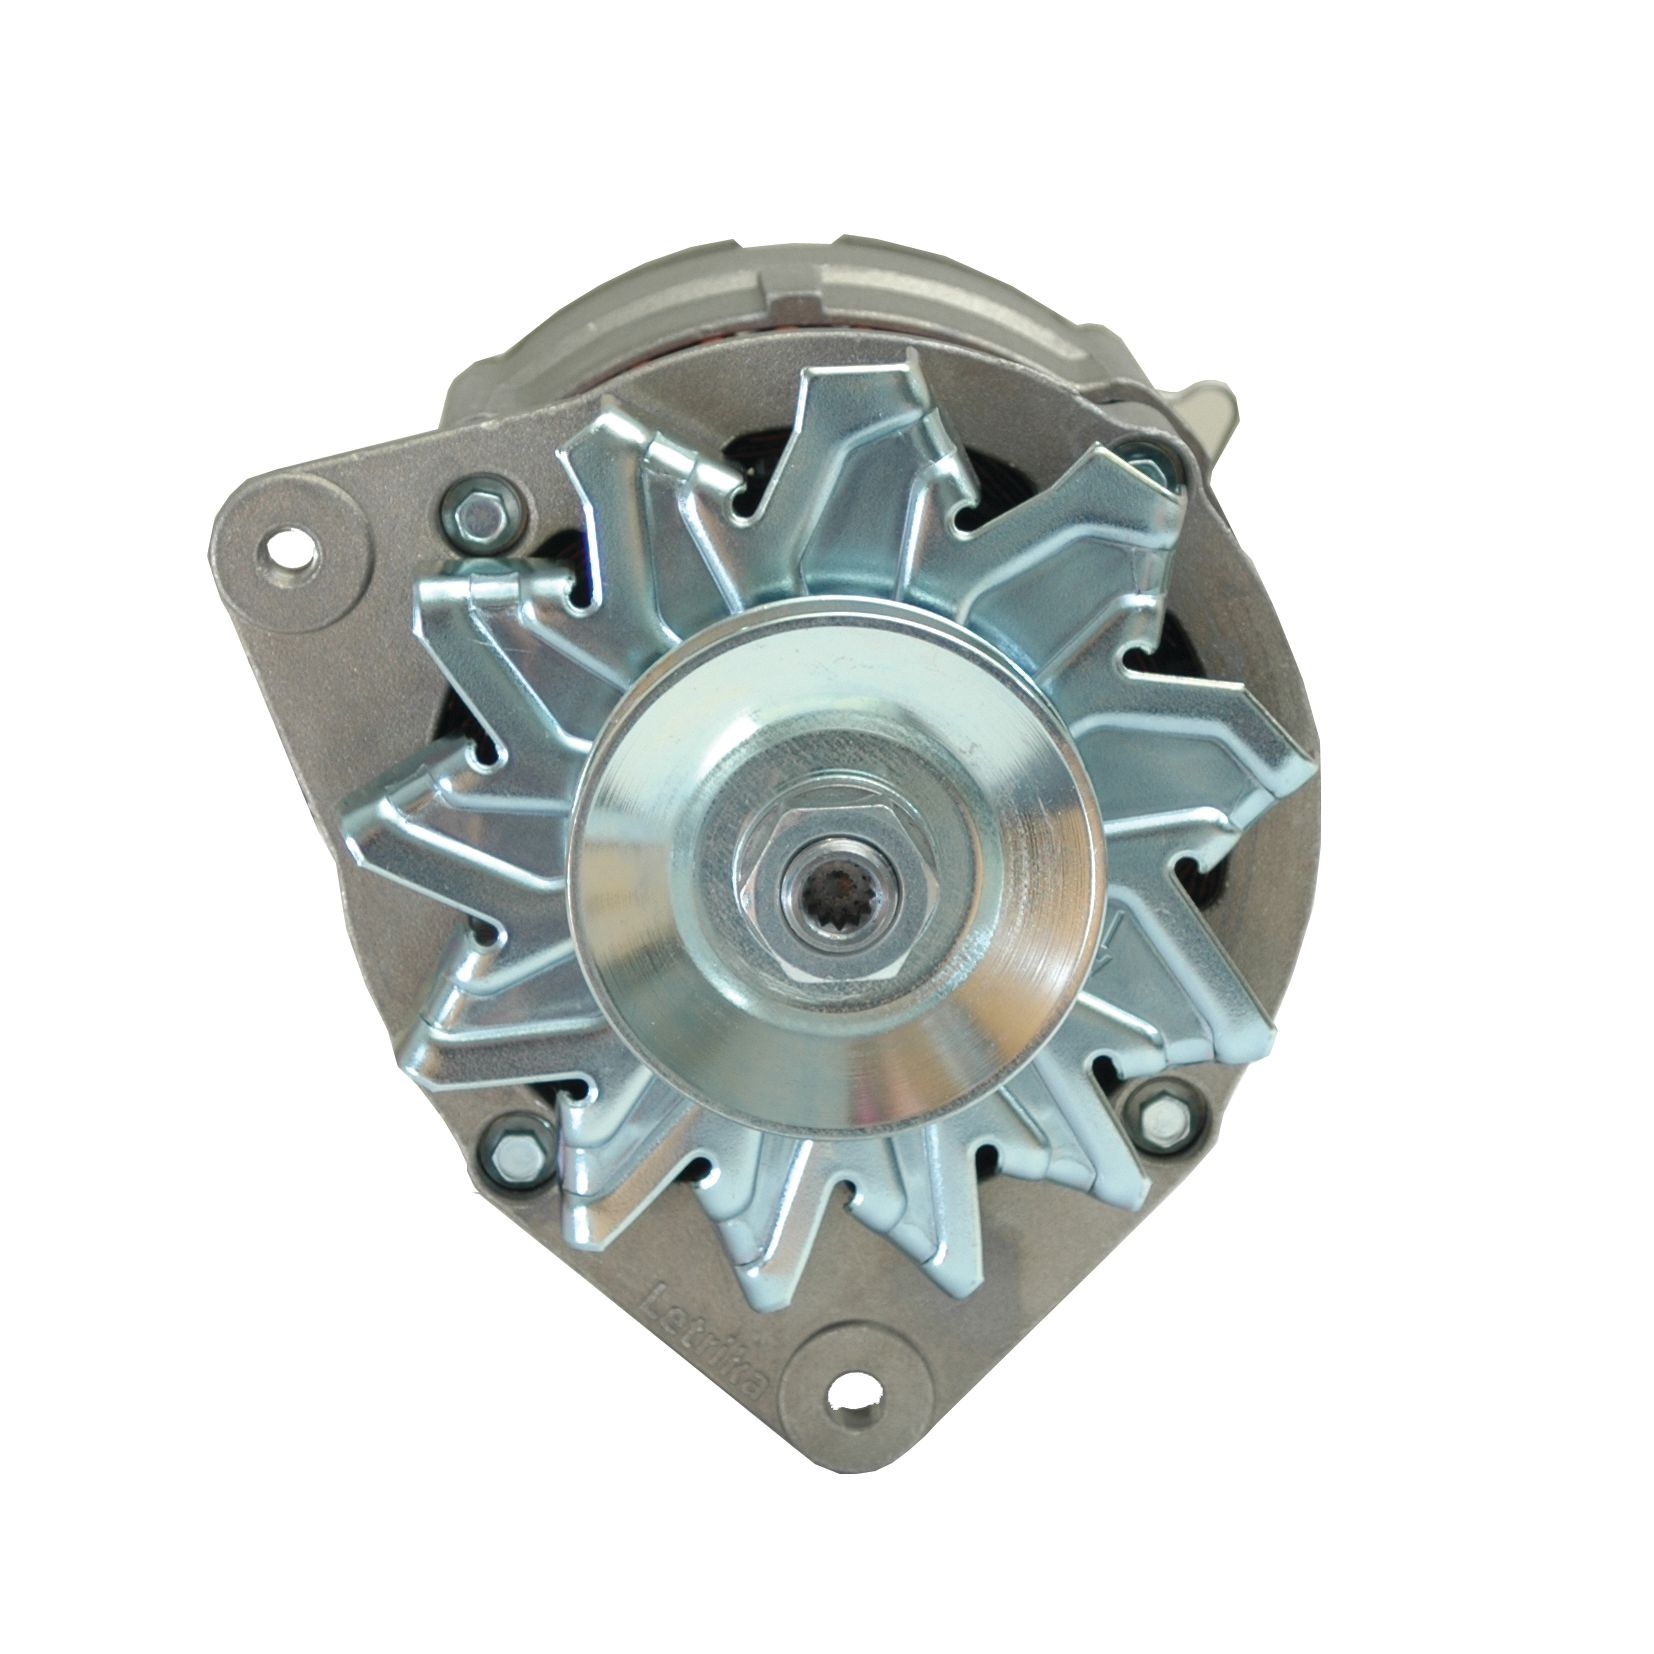 INT. HARVESTER ALTERNATOR (ISKRA) 359660